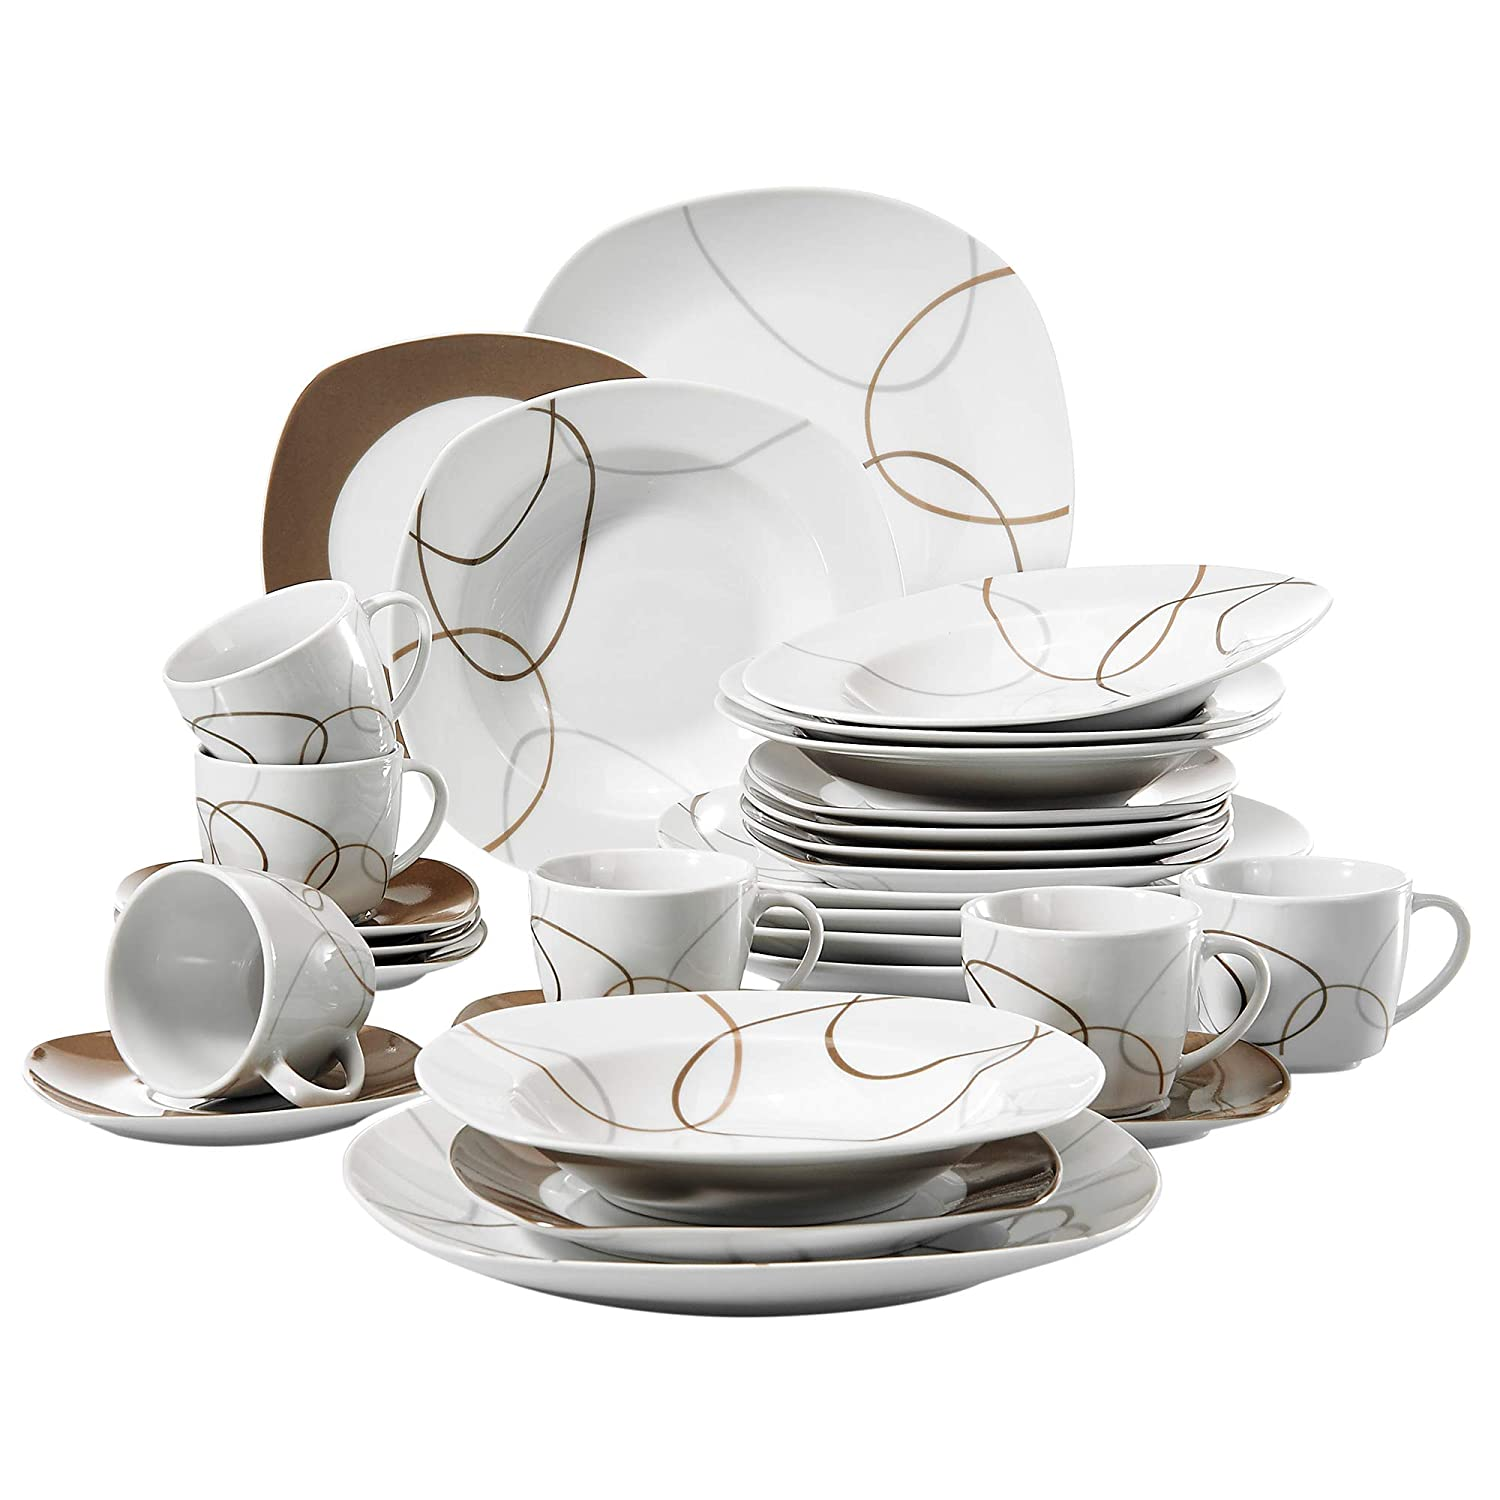 VEWEET 30-Piece Ceramic Tableware Set Brown Lines Patterns Kitchen Dinner Sets with Dinner Plate, Soup Plate, Dessert Plate, Saucer and Mug, Service for 6 (Nikita Series)